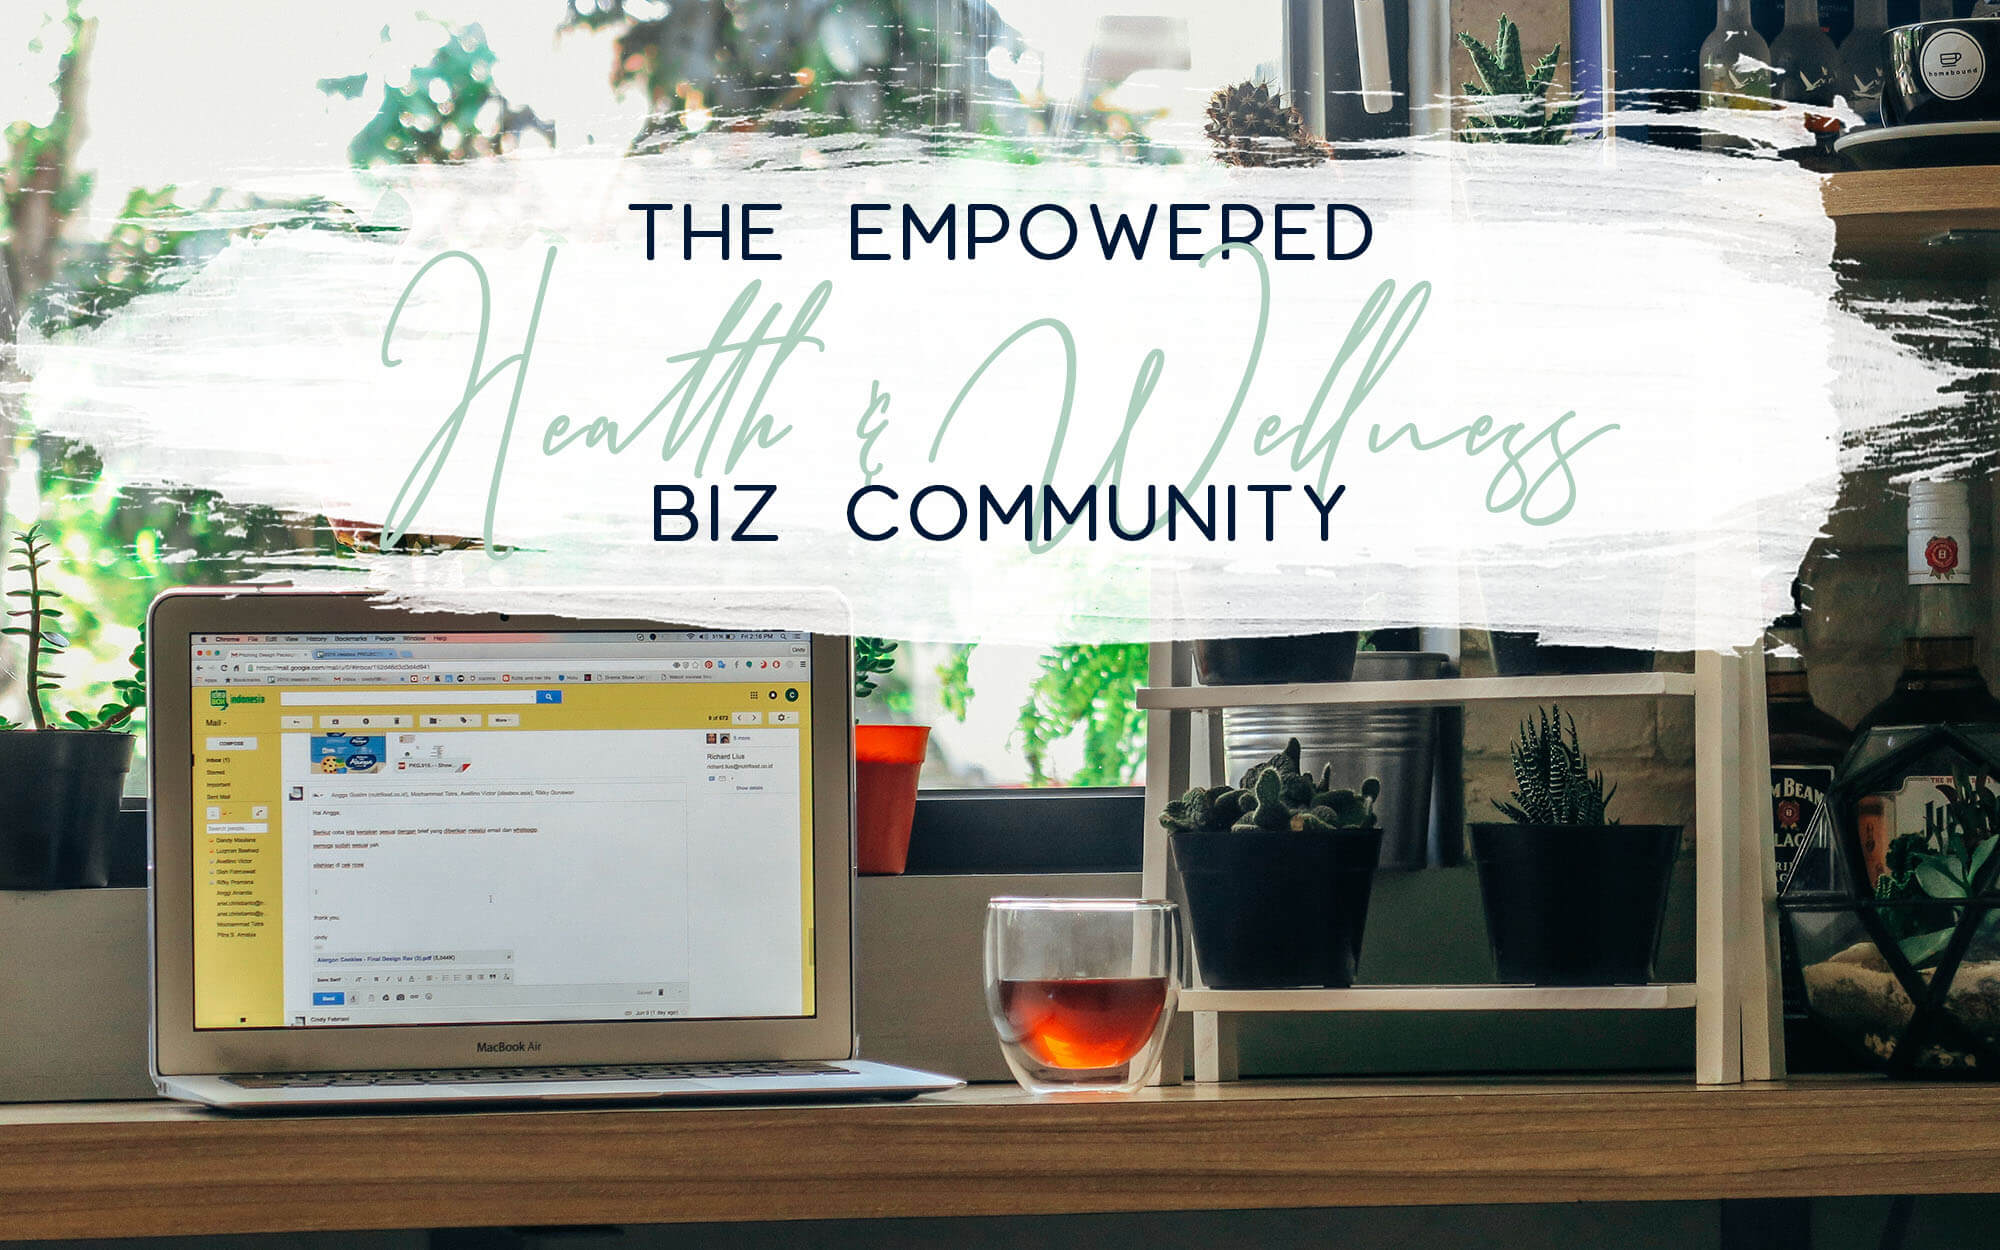 The Empowered Health Wellness Biz Community